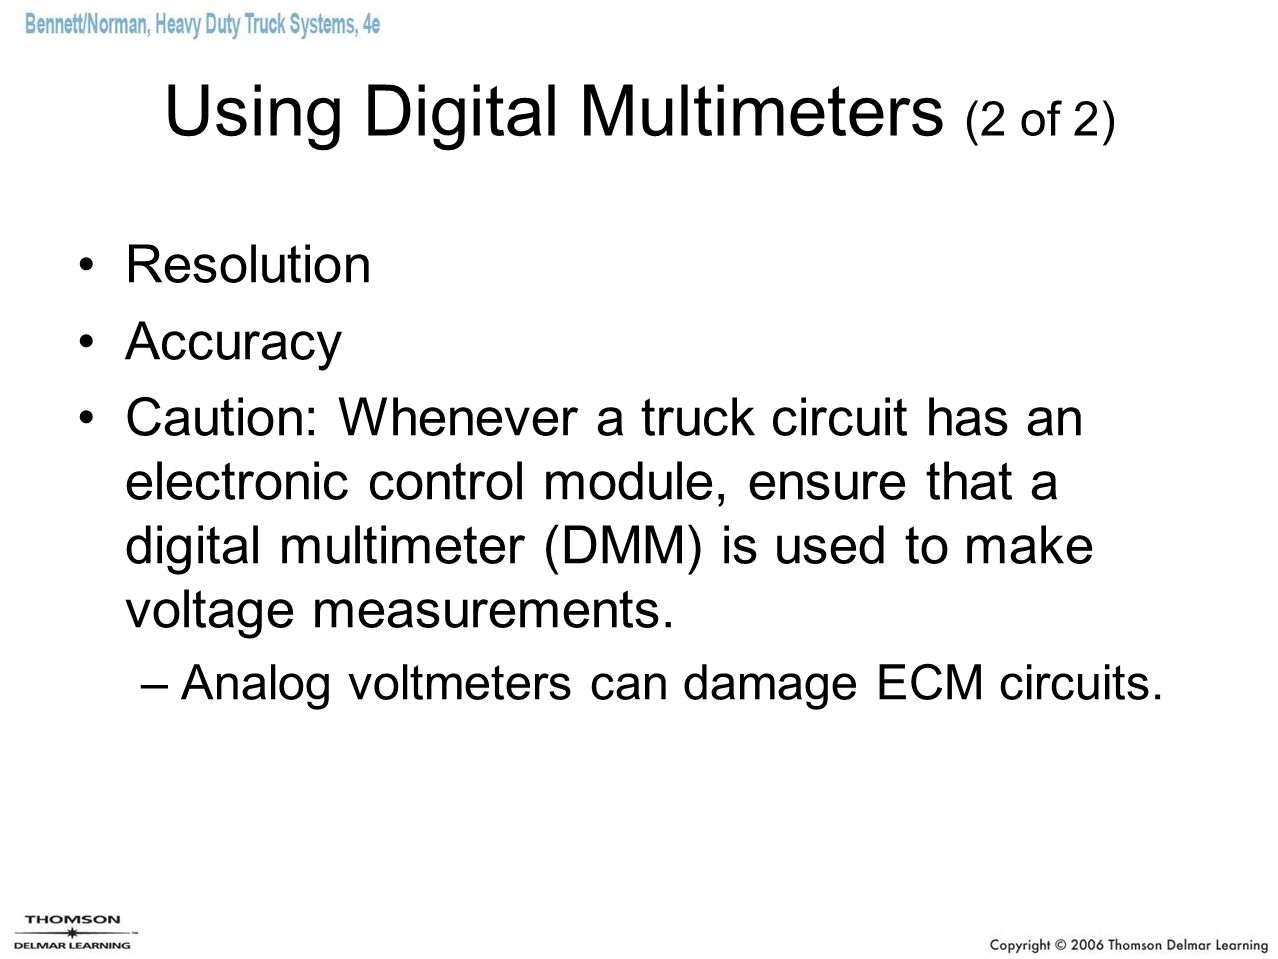 Using Digital Multimeters (2 of 2) Resolution Accuracy Caution: Whenever a truck circuit has an electronic control module, ensure that a digital multi